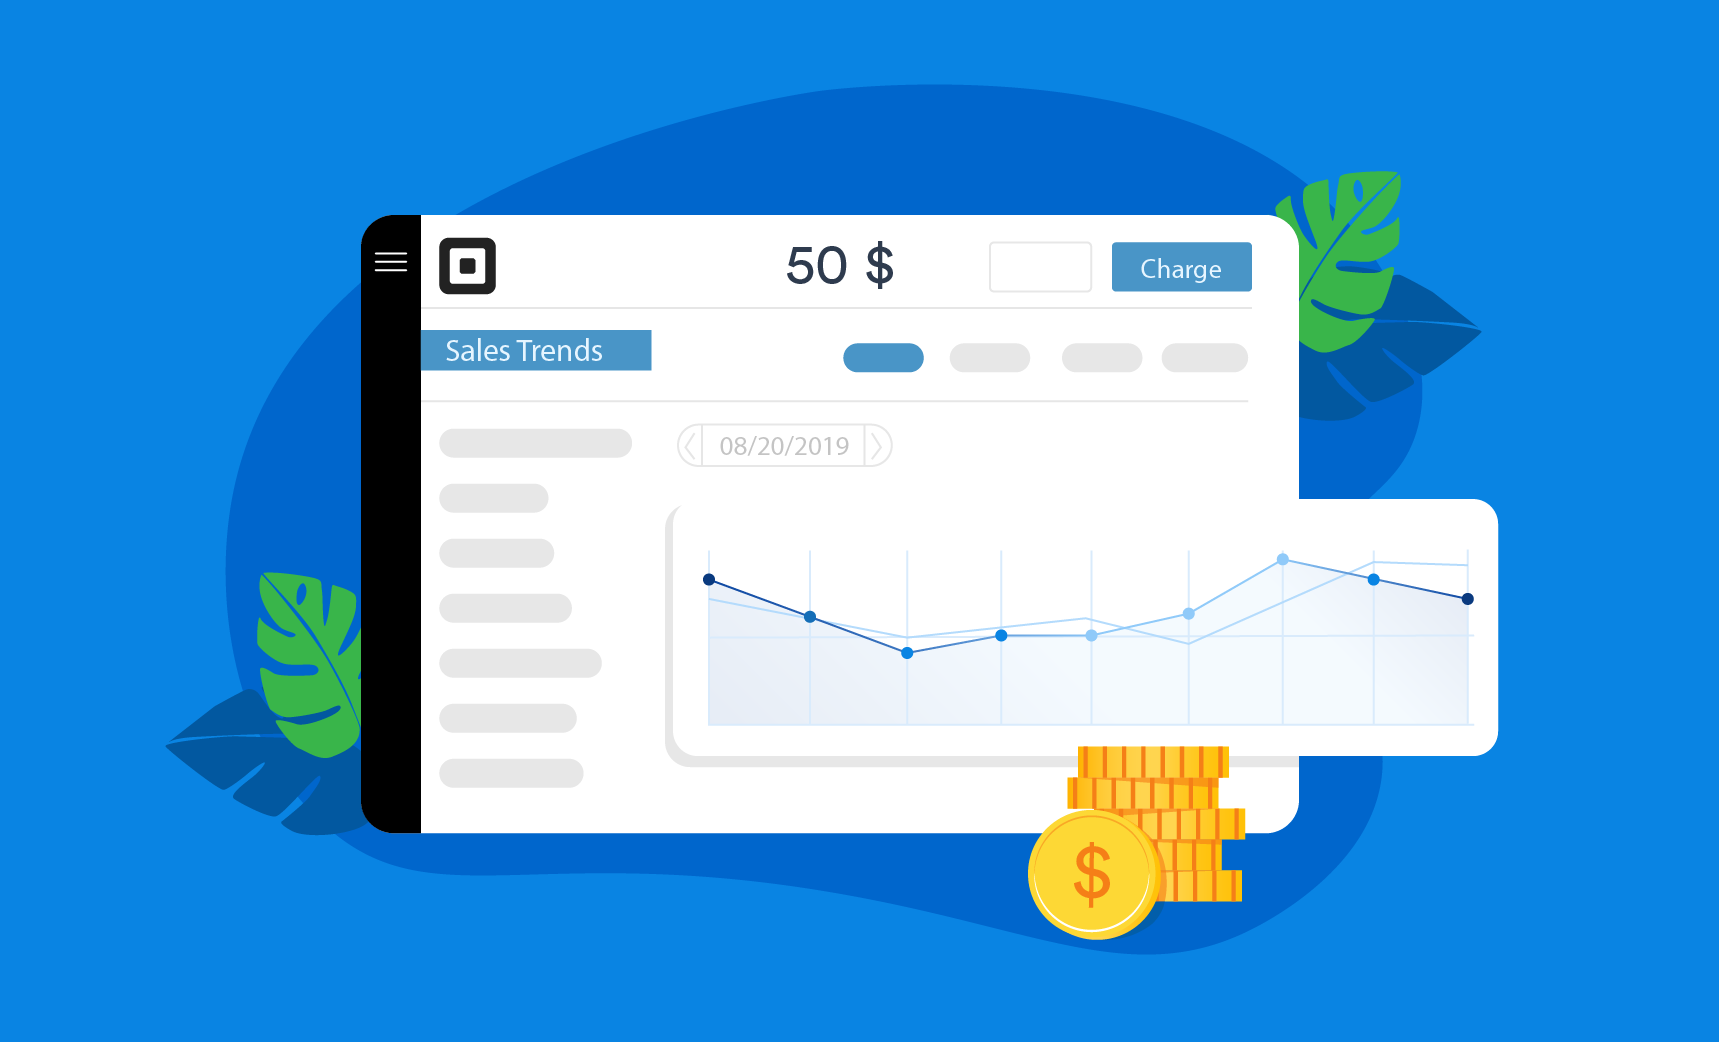 The basic and high-level features of Square Dashboard